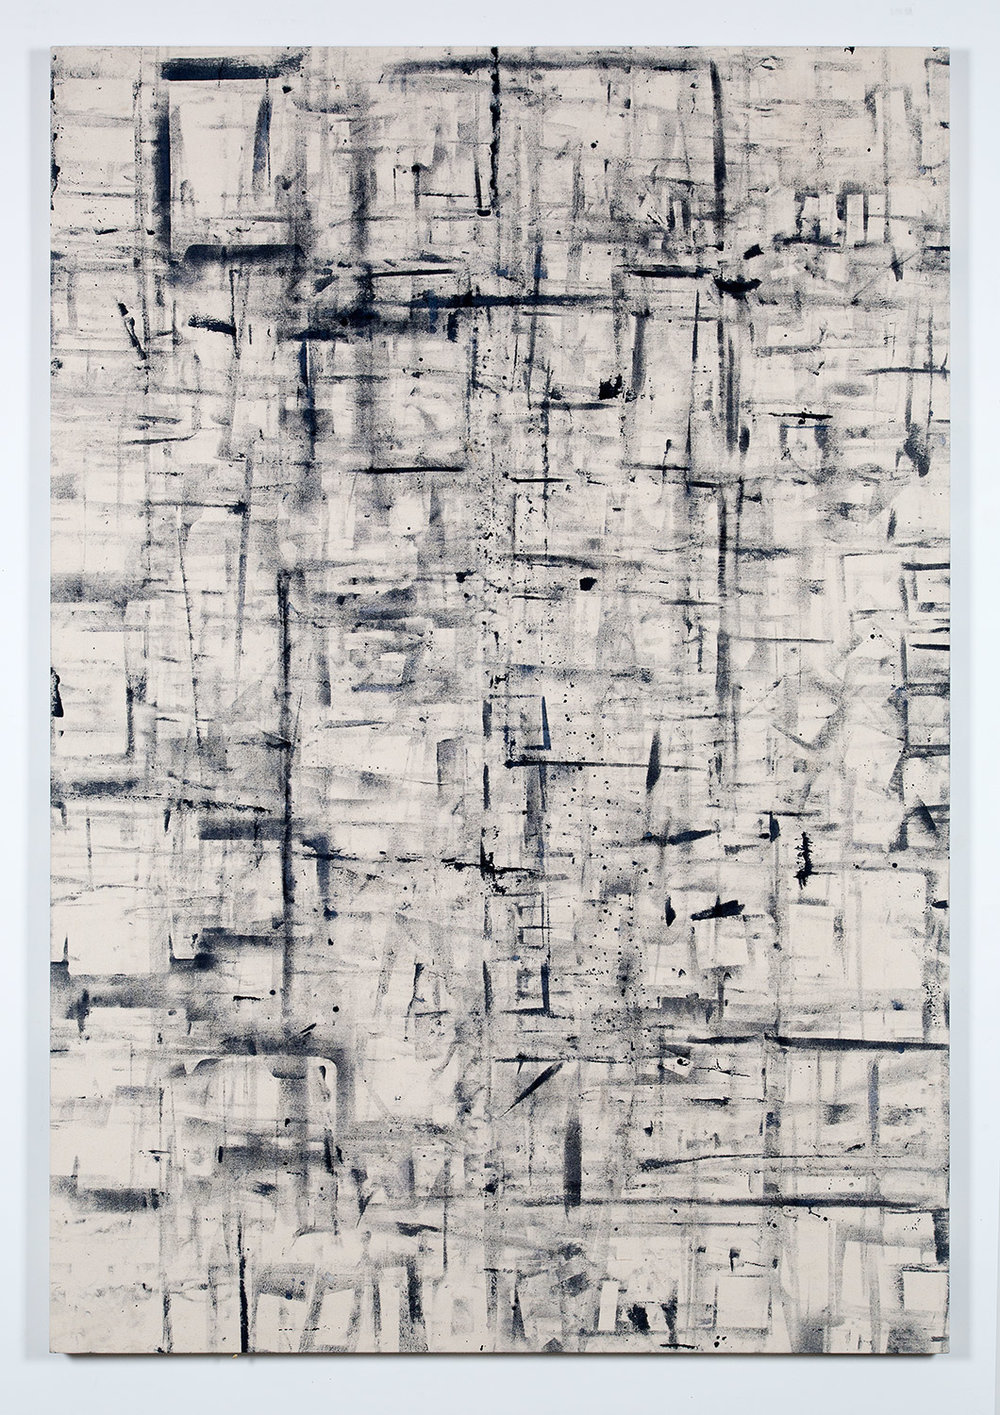 Marginalis (Los Angeles, California, February 1–April 30, 2014)   2014  Cyanotype chemistry on canvas  80 x 55 inches   Cyanotype Paintings, 2013–2015    Marginalia, 2014